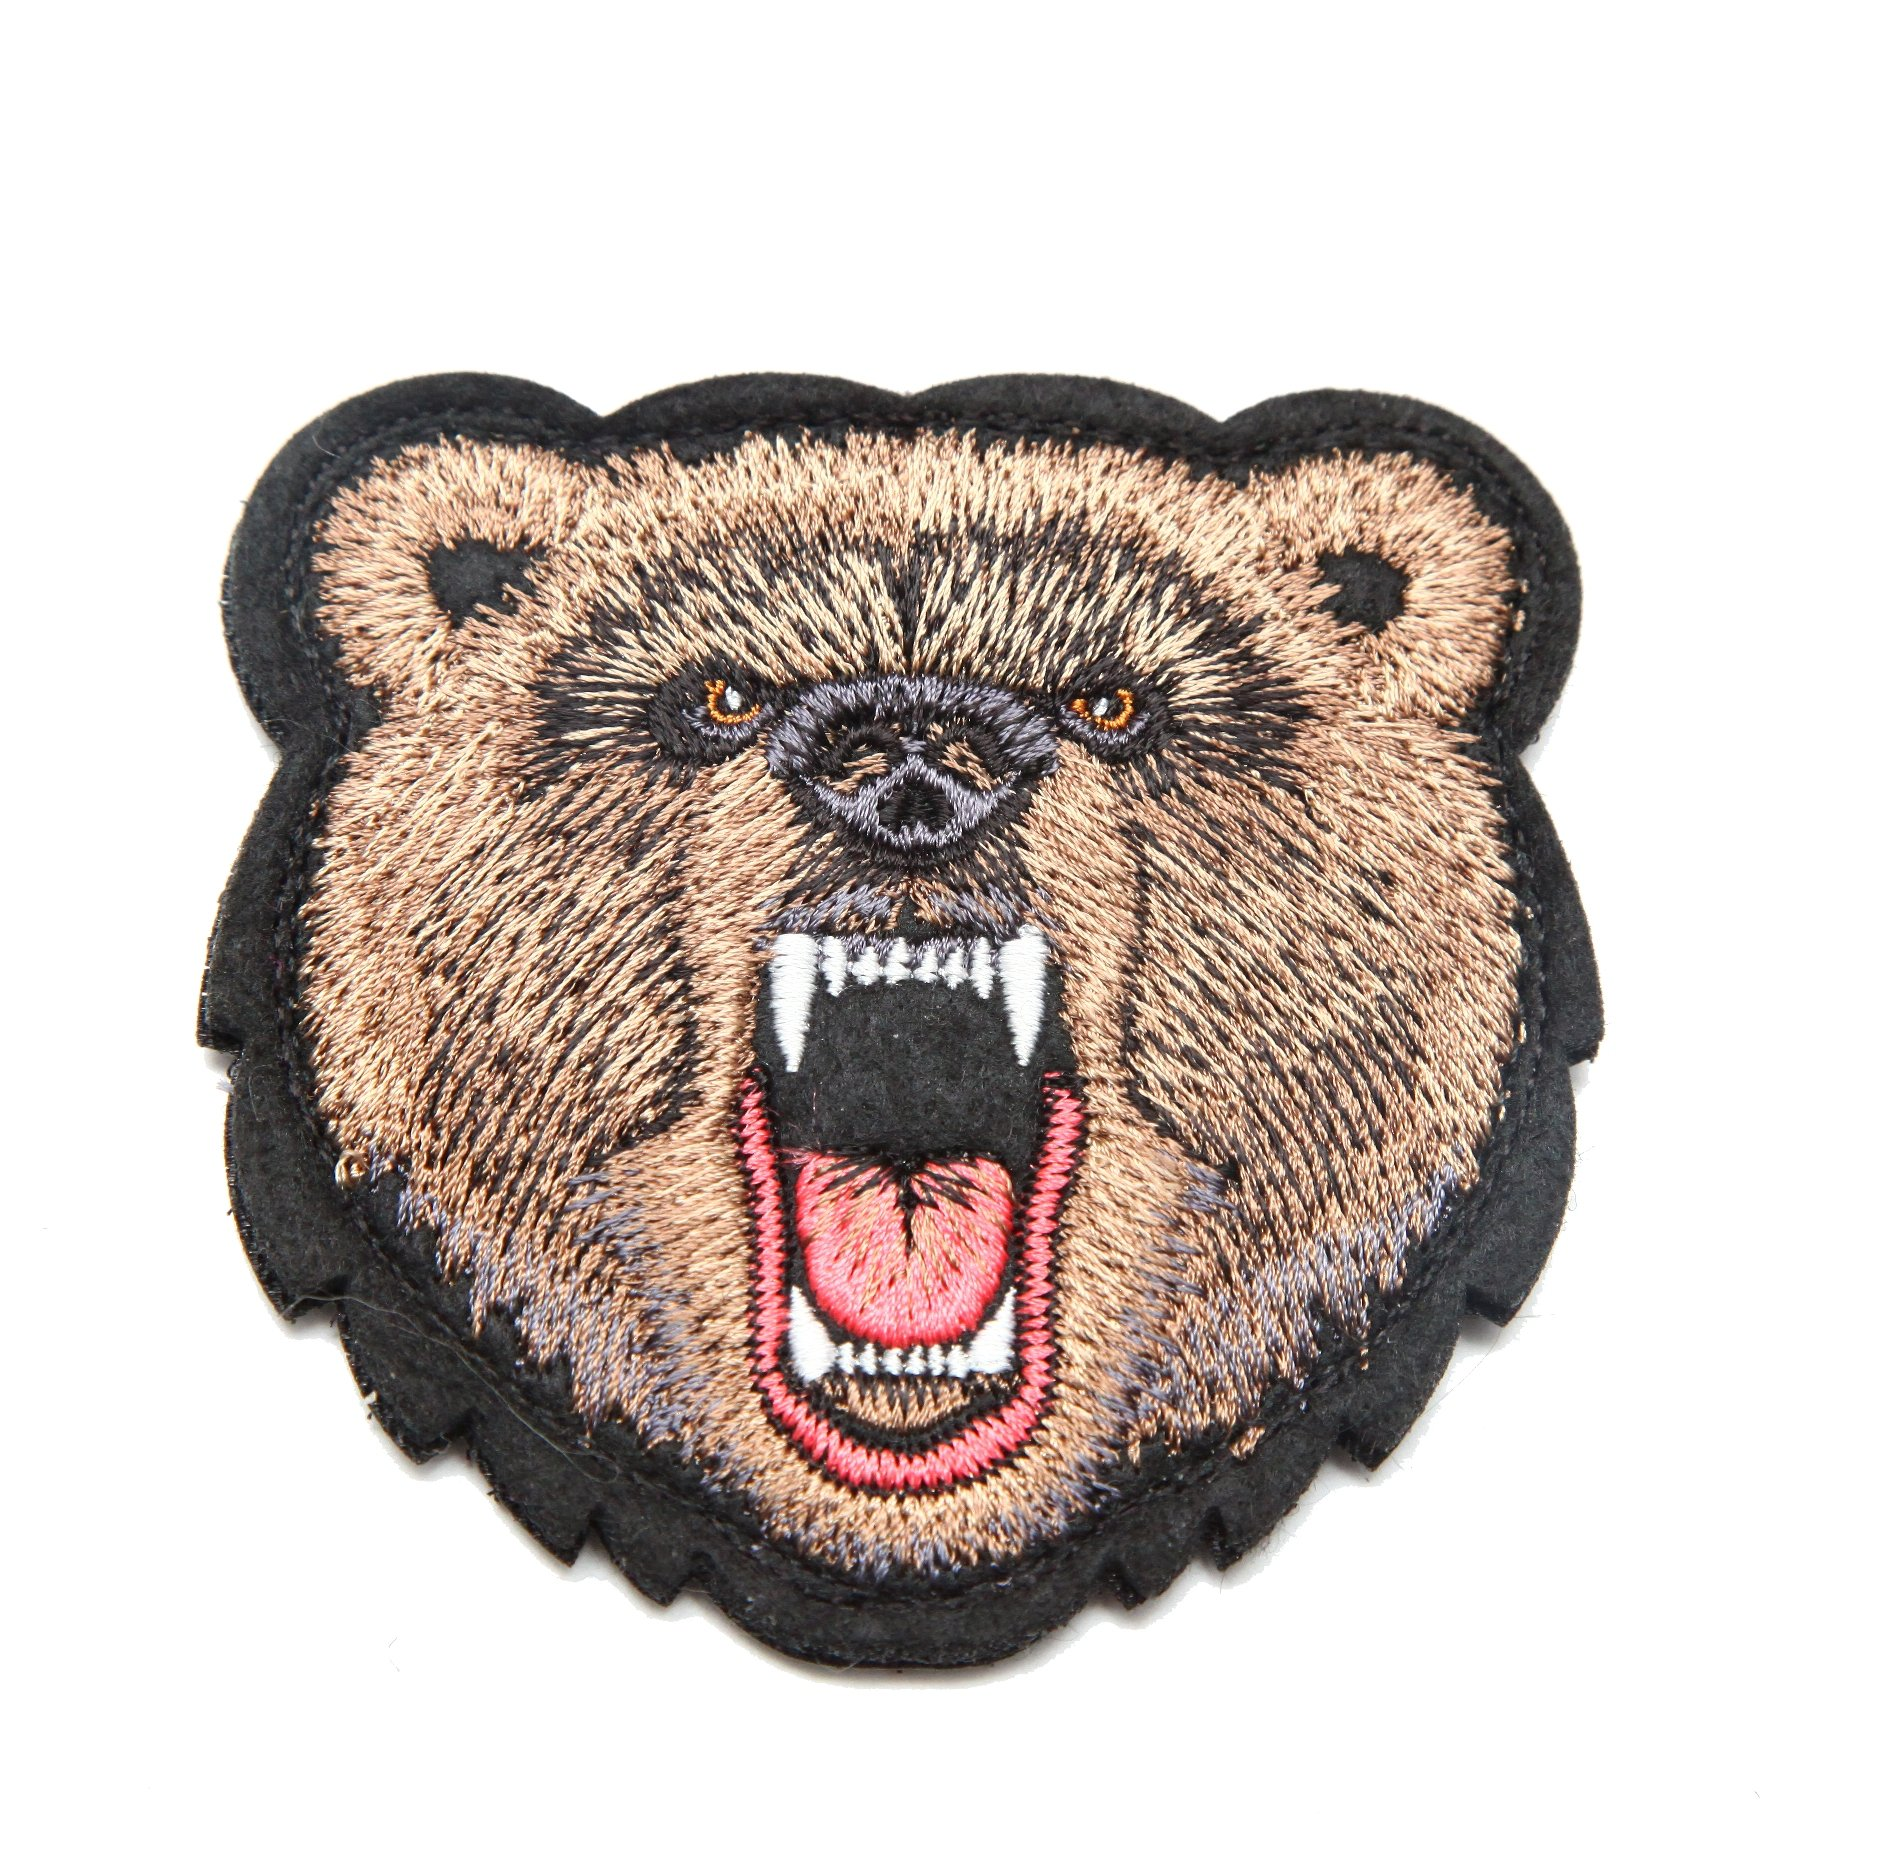 Moto Patch With Angry Russian Bear Face Ivan The Bear Store